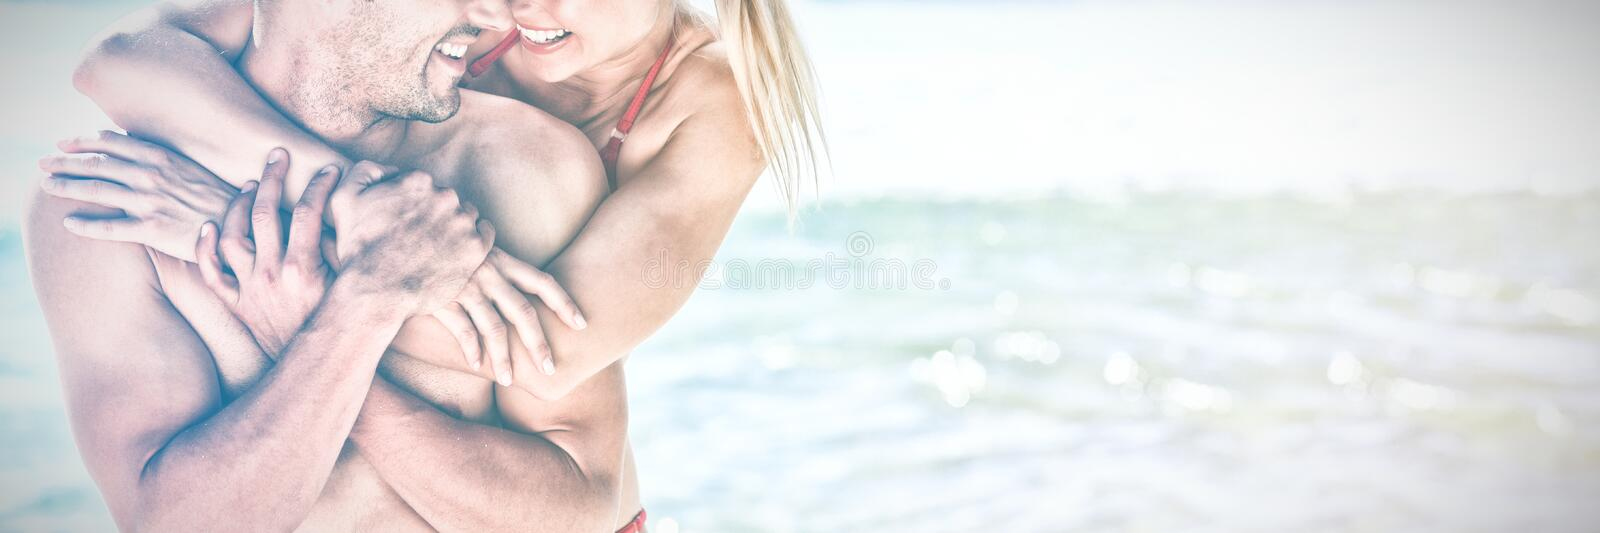 Happy lovers at the beach royalty free stock photo